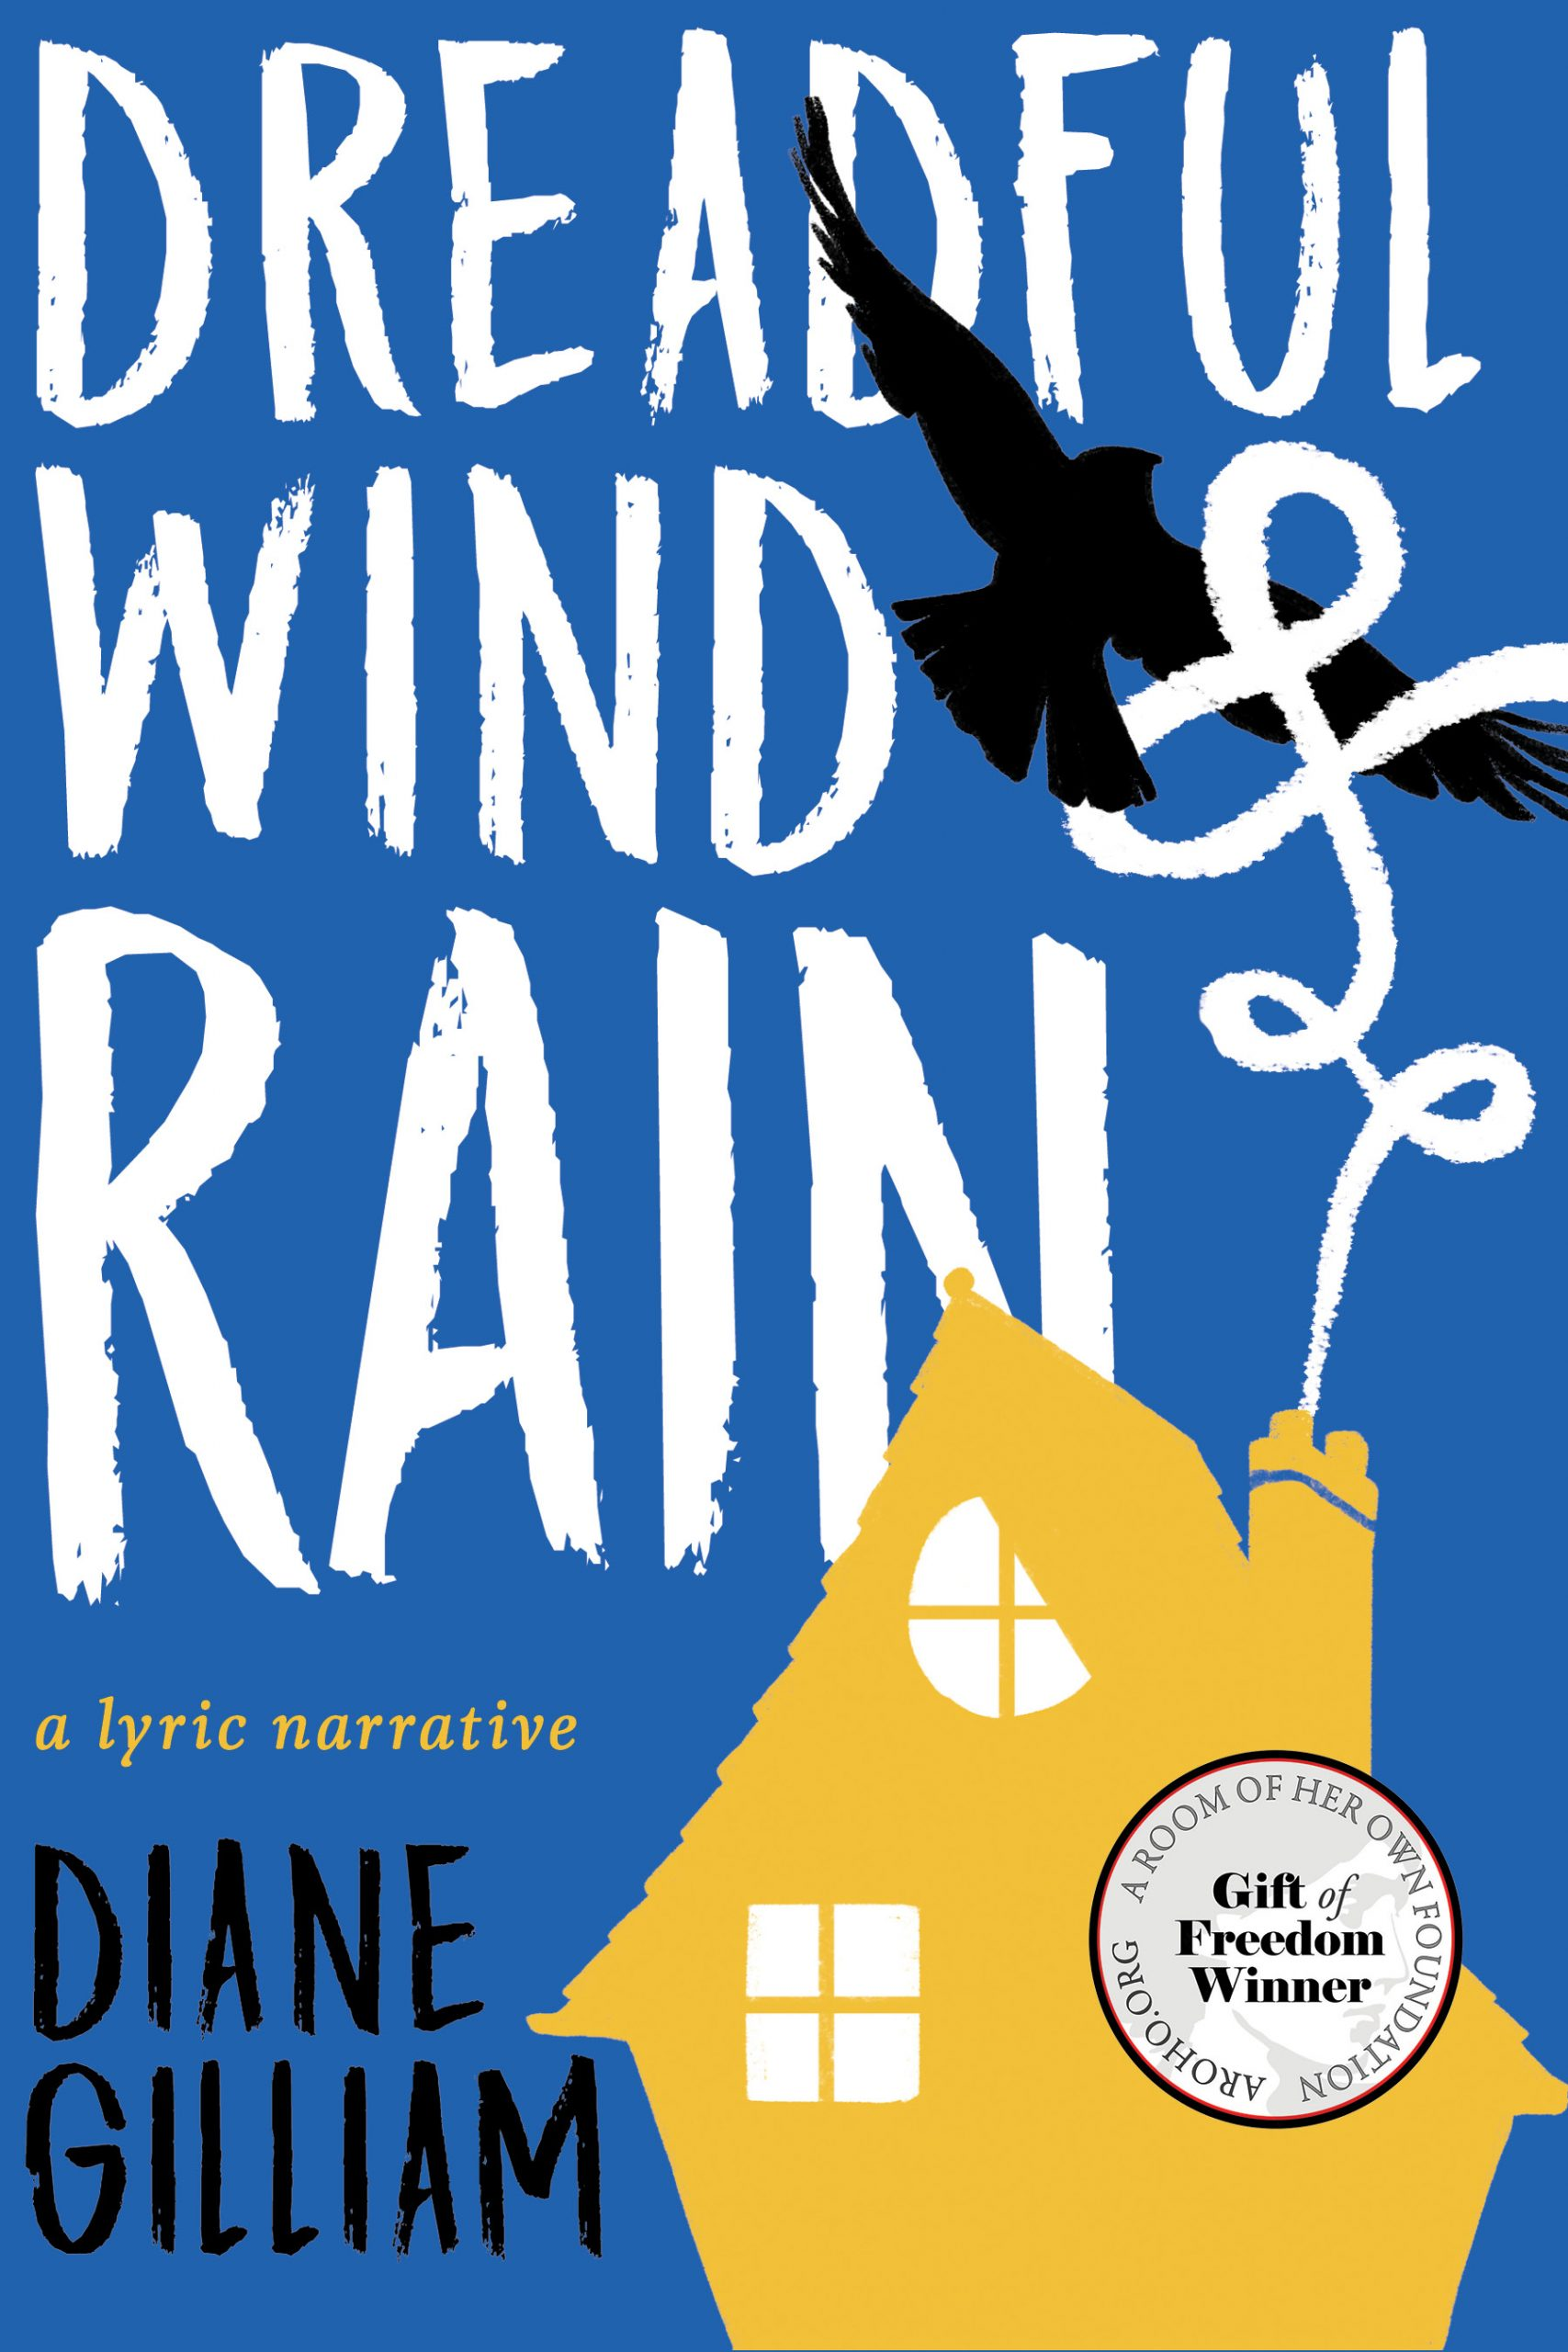 A blue background with a yellow house and a black bird with white script that reads Dreadful Wind & Rain a lyric narrative by Diane Gilliam.